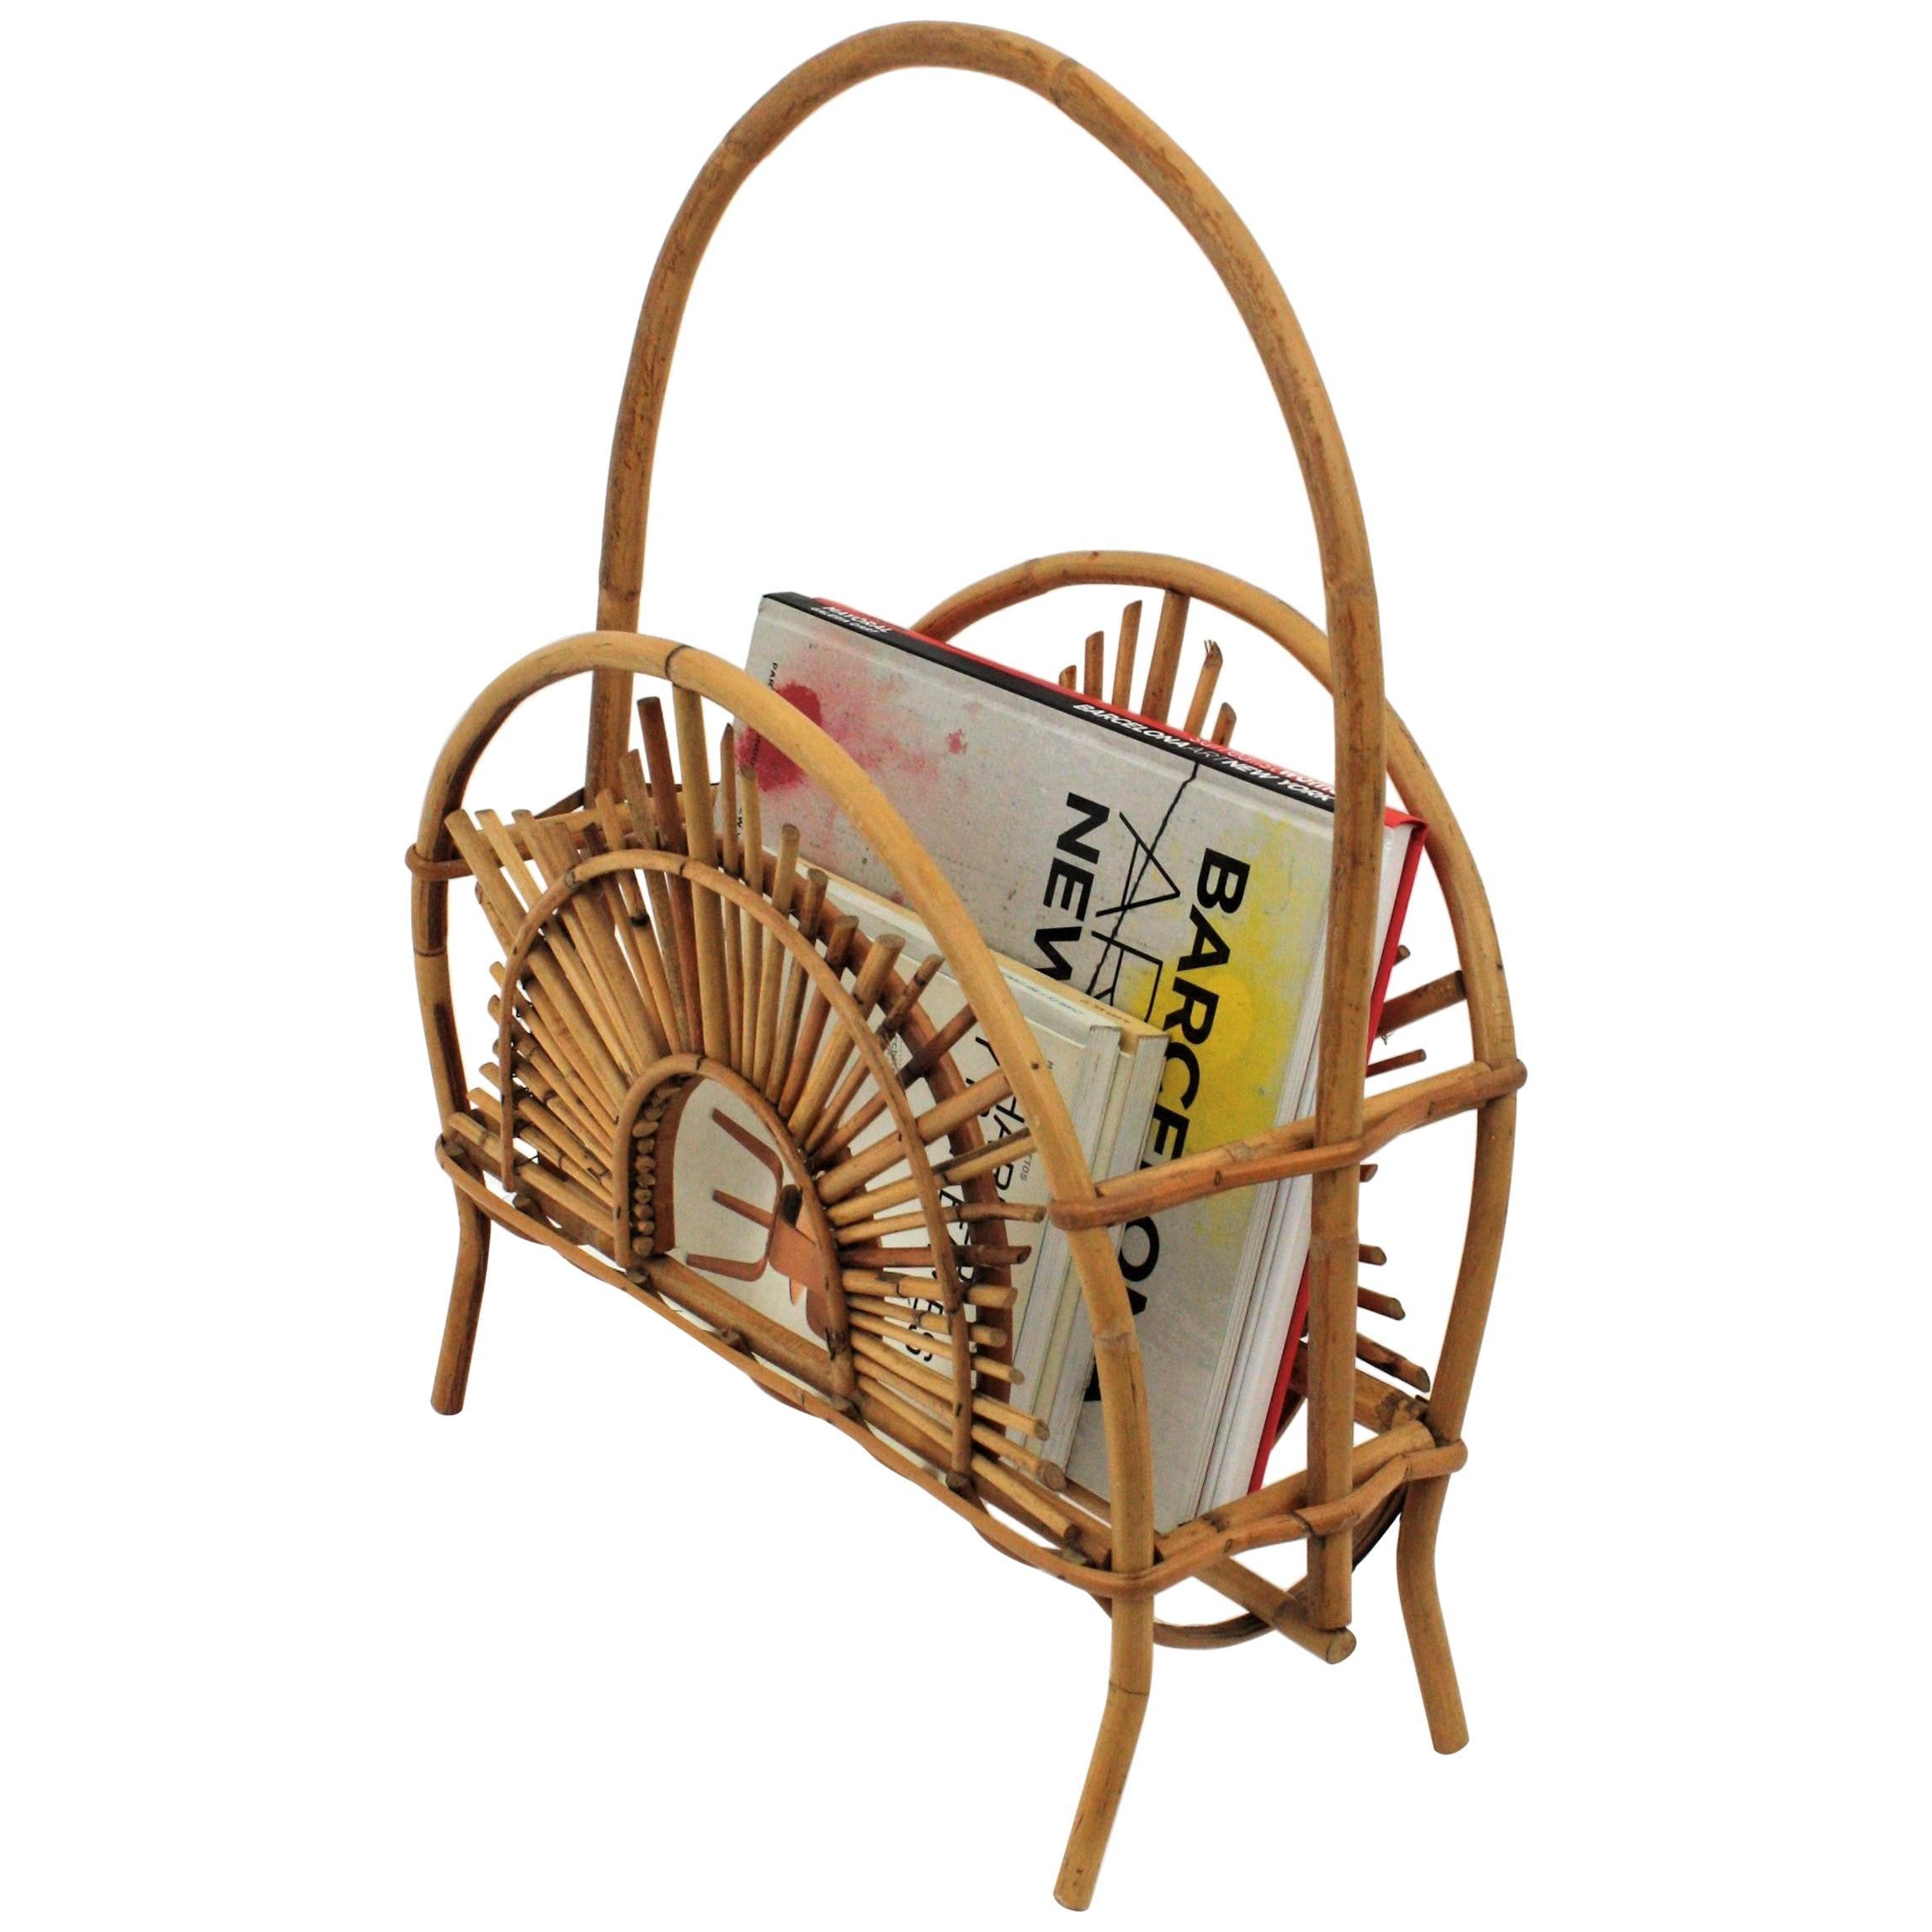 Franco Albini Style Bamboo and Rattan Sunburst Magazine Rack / Stand